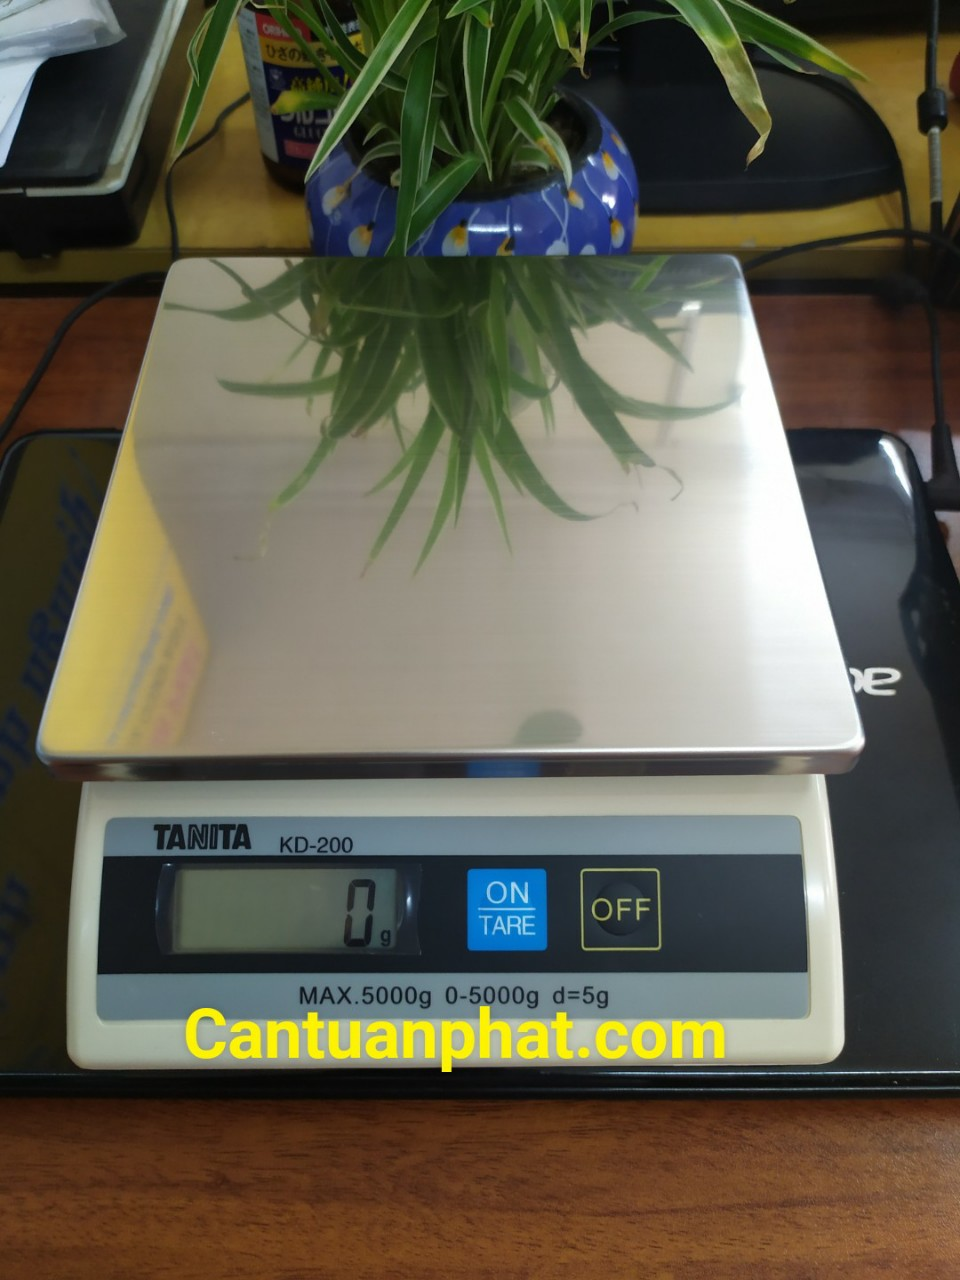 http://cantuanphat.com/pic/Product/2656_637007870667915357.jpg